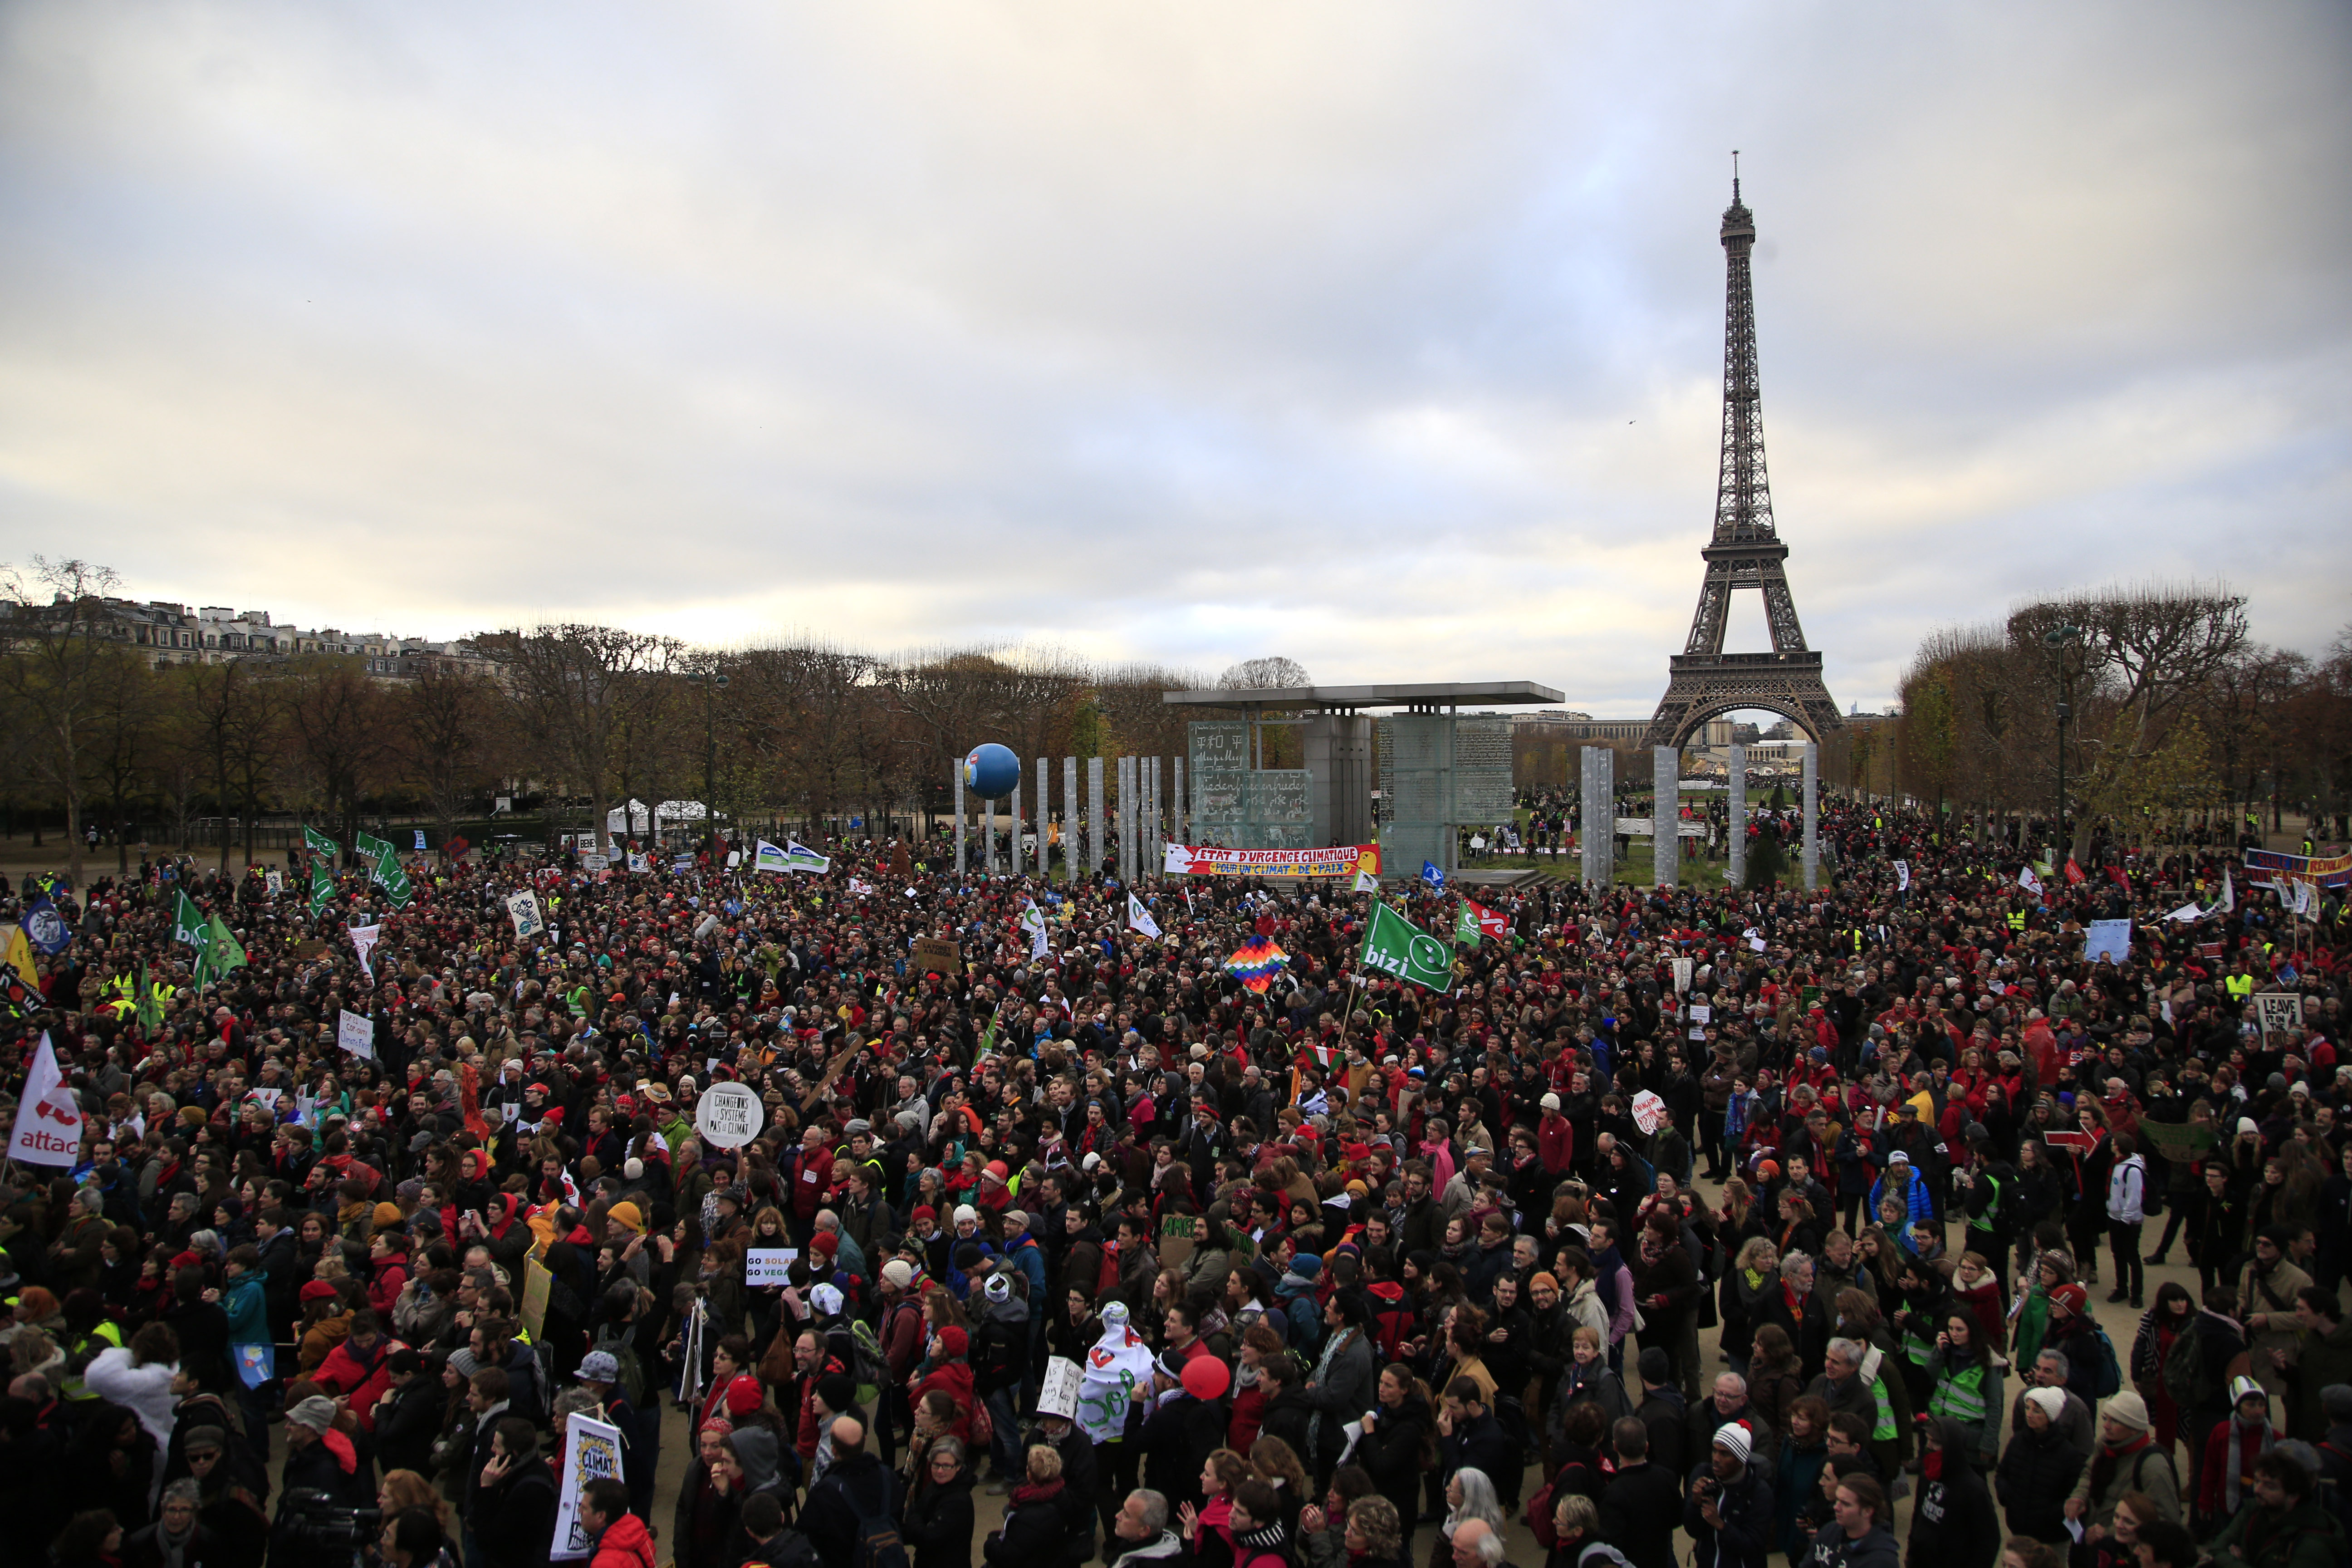 Activists gather near the Eiffel Tower in Paris on Dec.12, 2015.